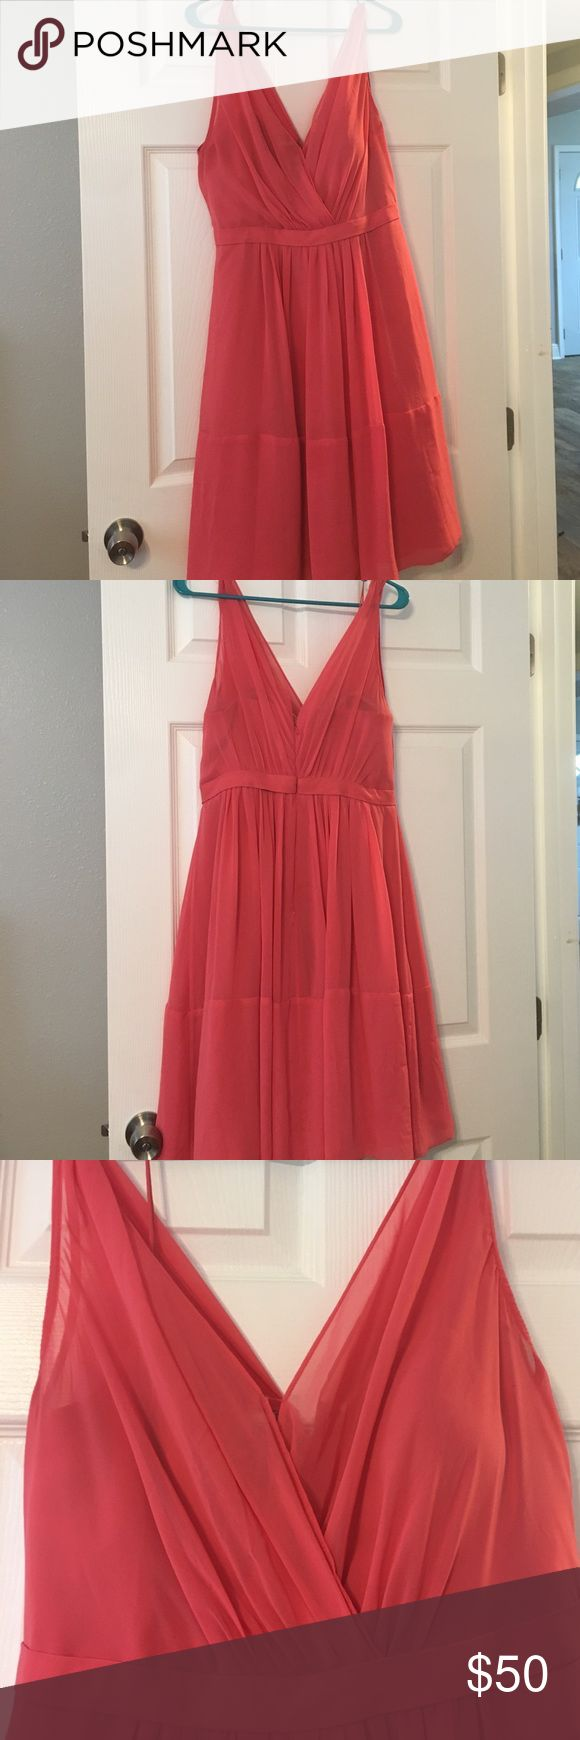 Watermelon pink Jenny Yoo party dress Semi-sheer, mid length, dress. Perfect for a bridesmaid dress, attending a wedding, or party. Has a built in petticoat and stay up lining. Jenny Yoo Dresses Midi